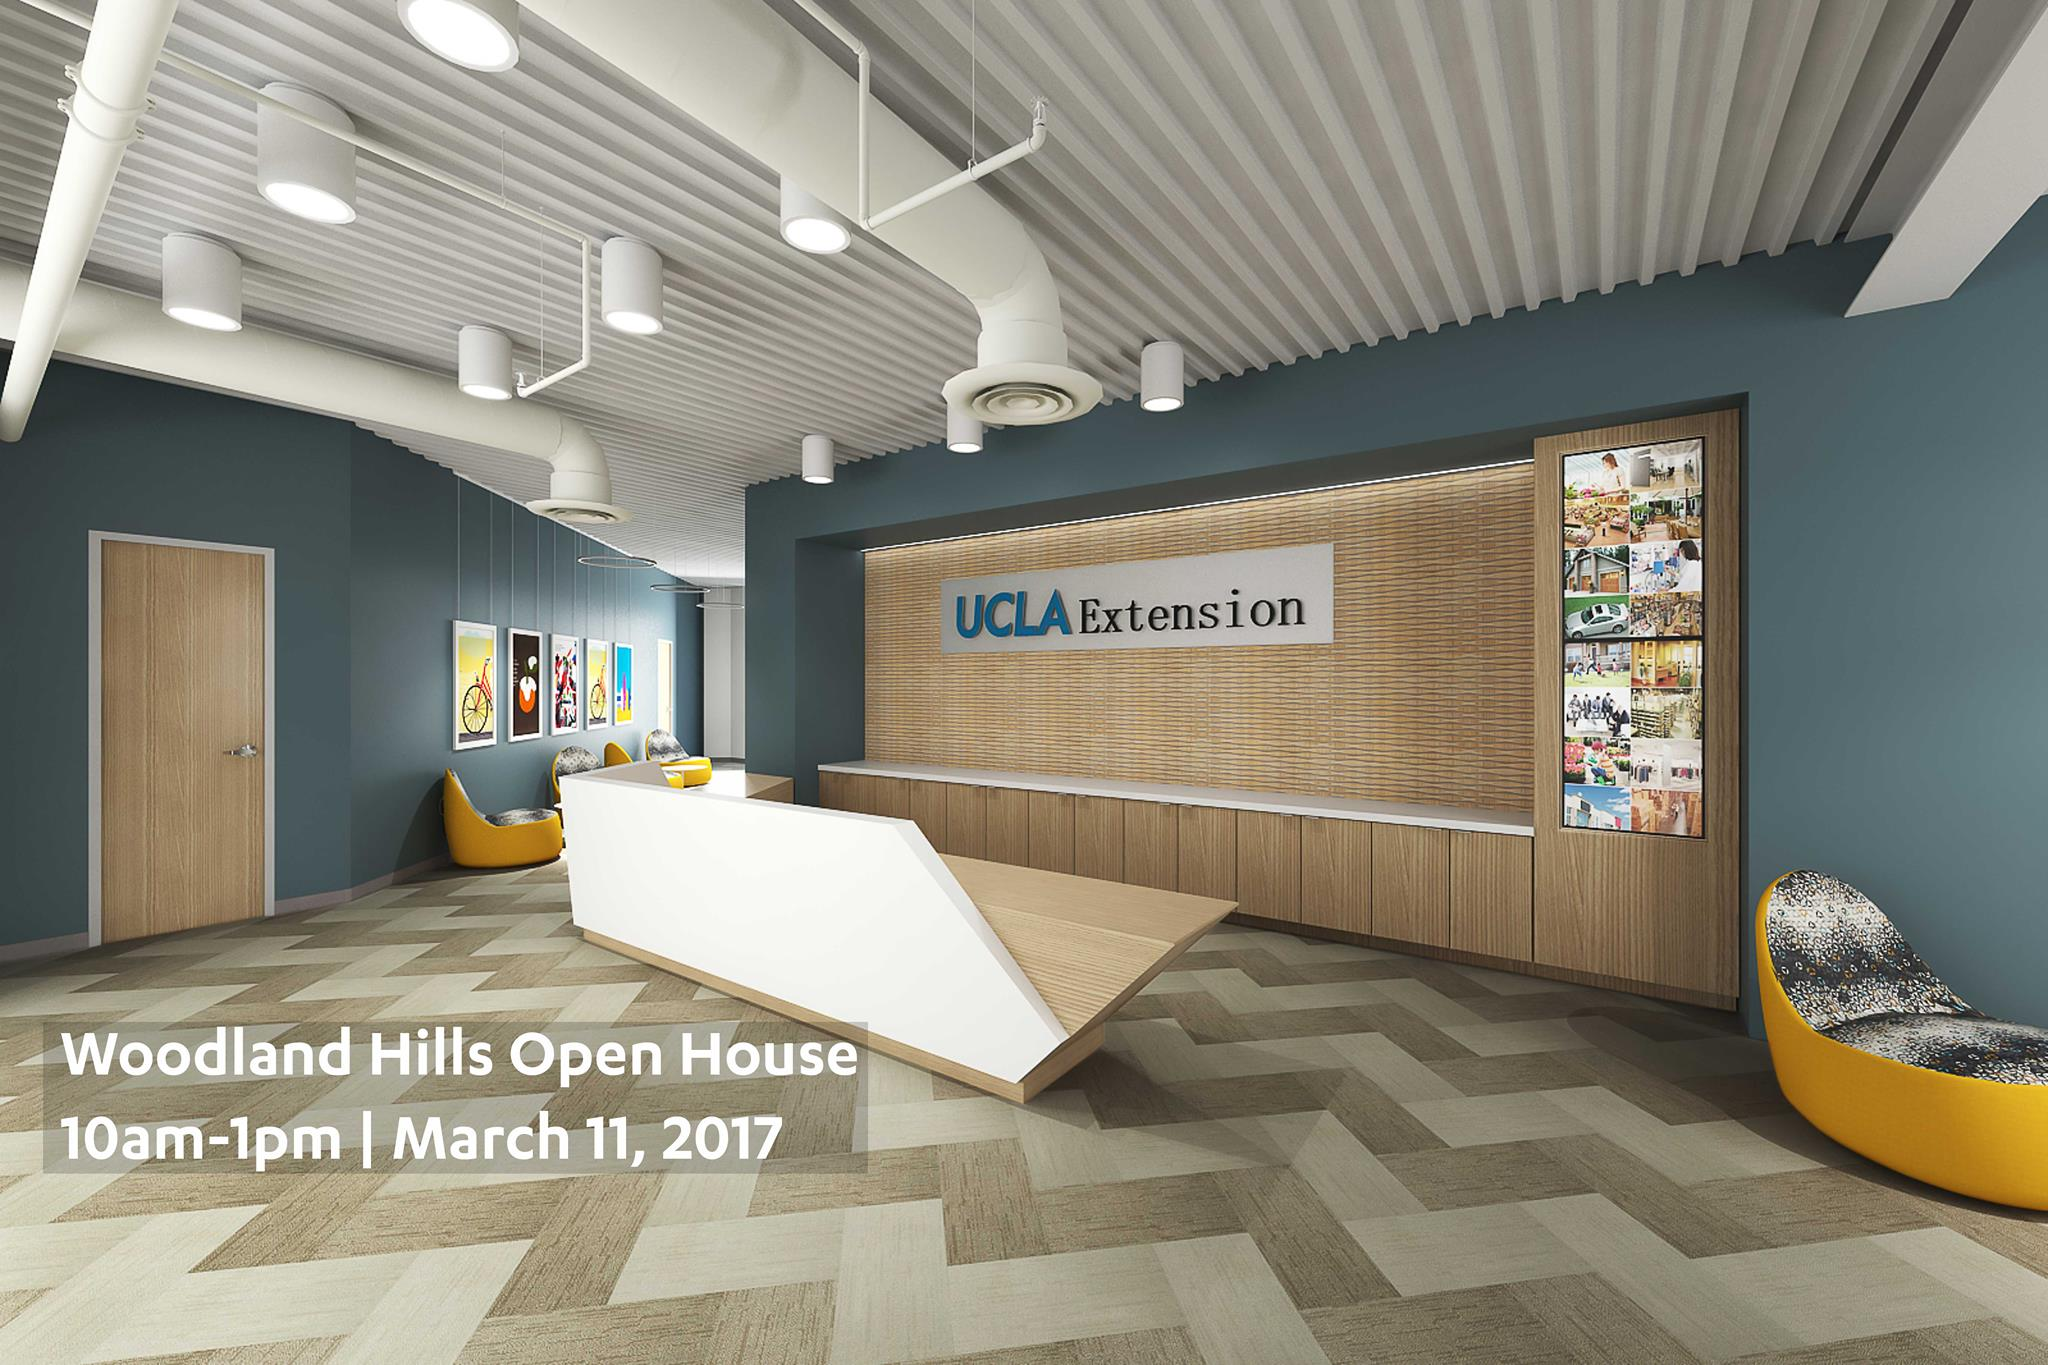 Ucla Extension Woodland Hills Grand Opening And Reception Architecture Interior Design